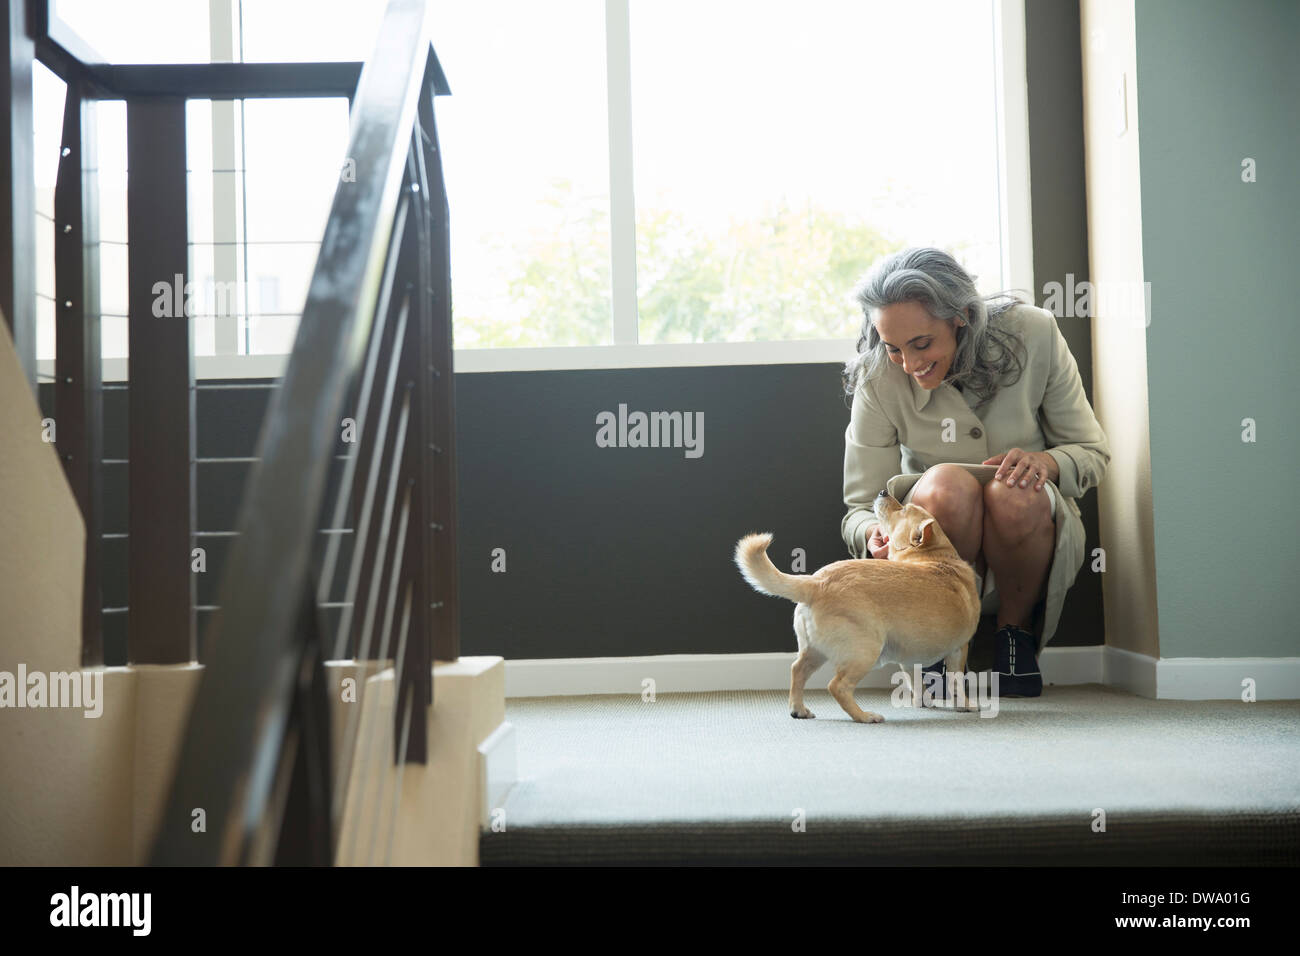 Mature woman petting her dog on stairwell - Stock Image